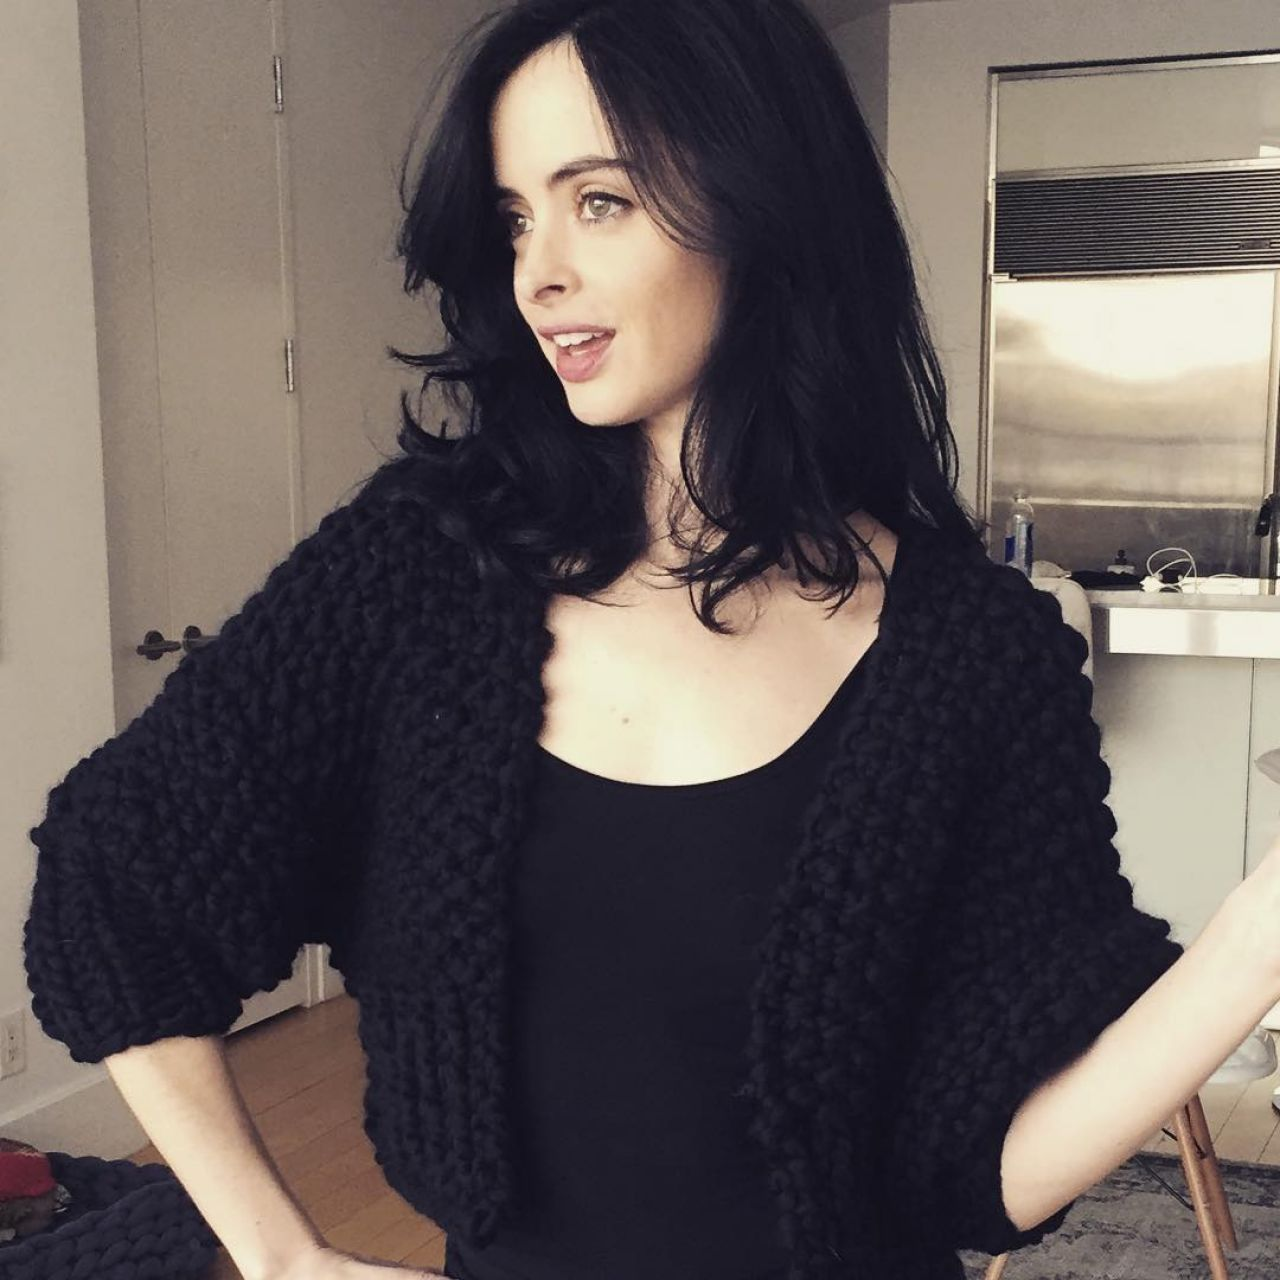 Libros Pequeñas Mentirosas Image Result For Krysten Ritter Girls Marvel Actrices